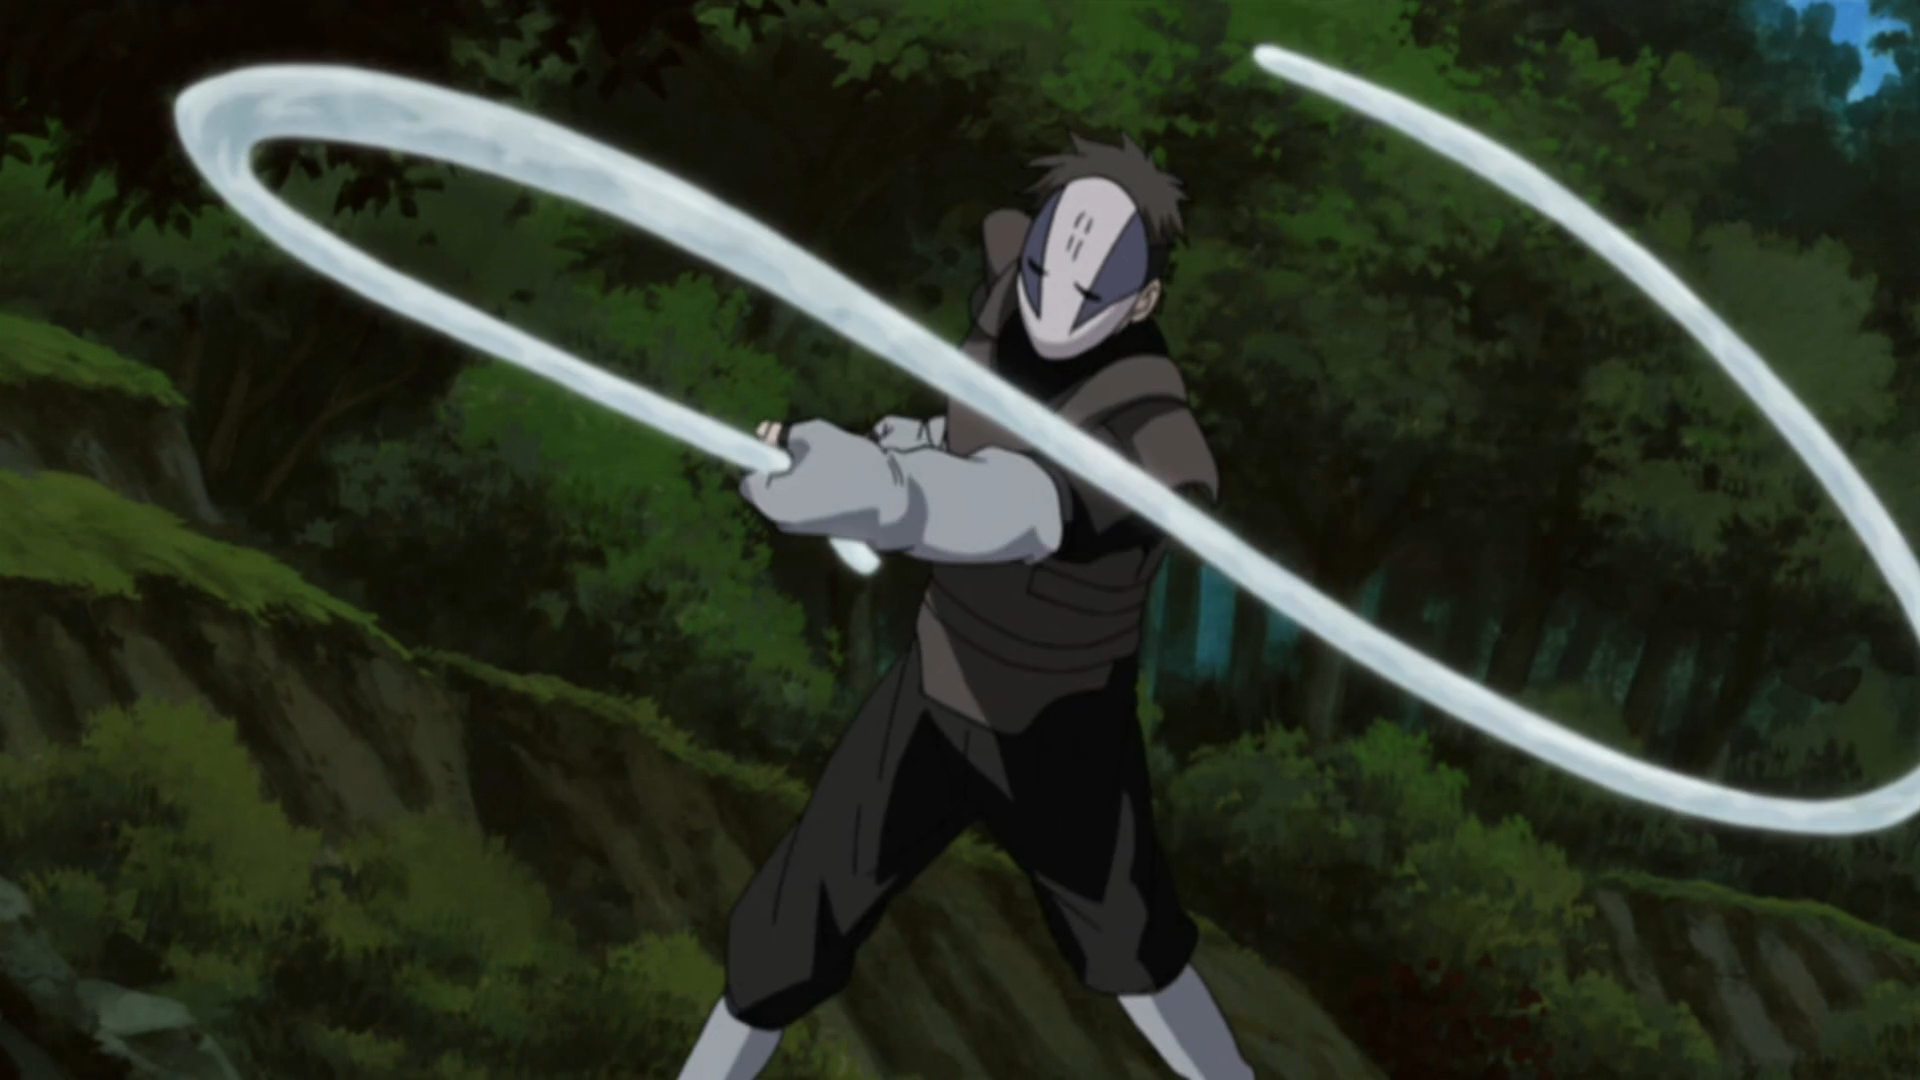 https://vignette.wikia.nocookie.net/naruto/images/a/a6/Water_Whip.png/revision/latest?cb=20150320111422